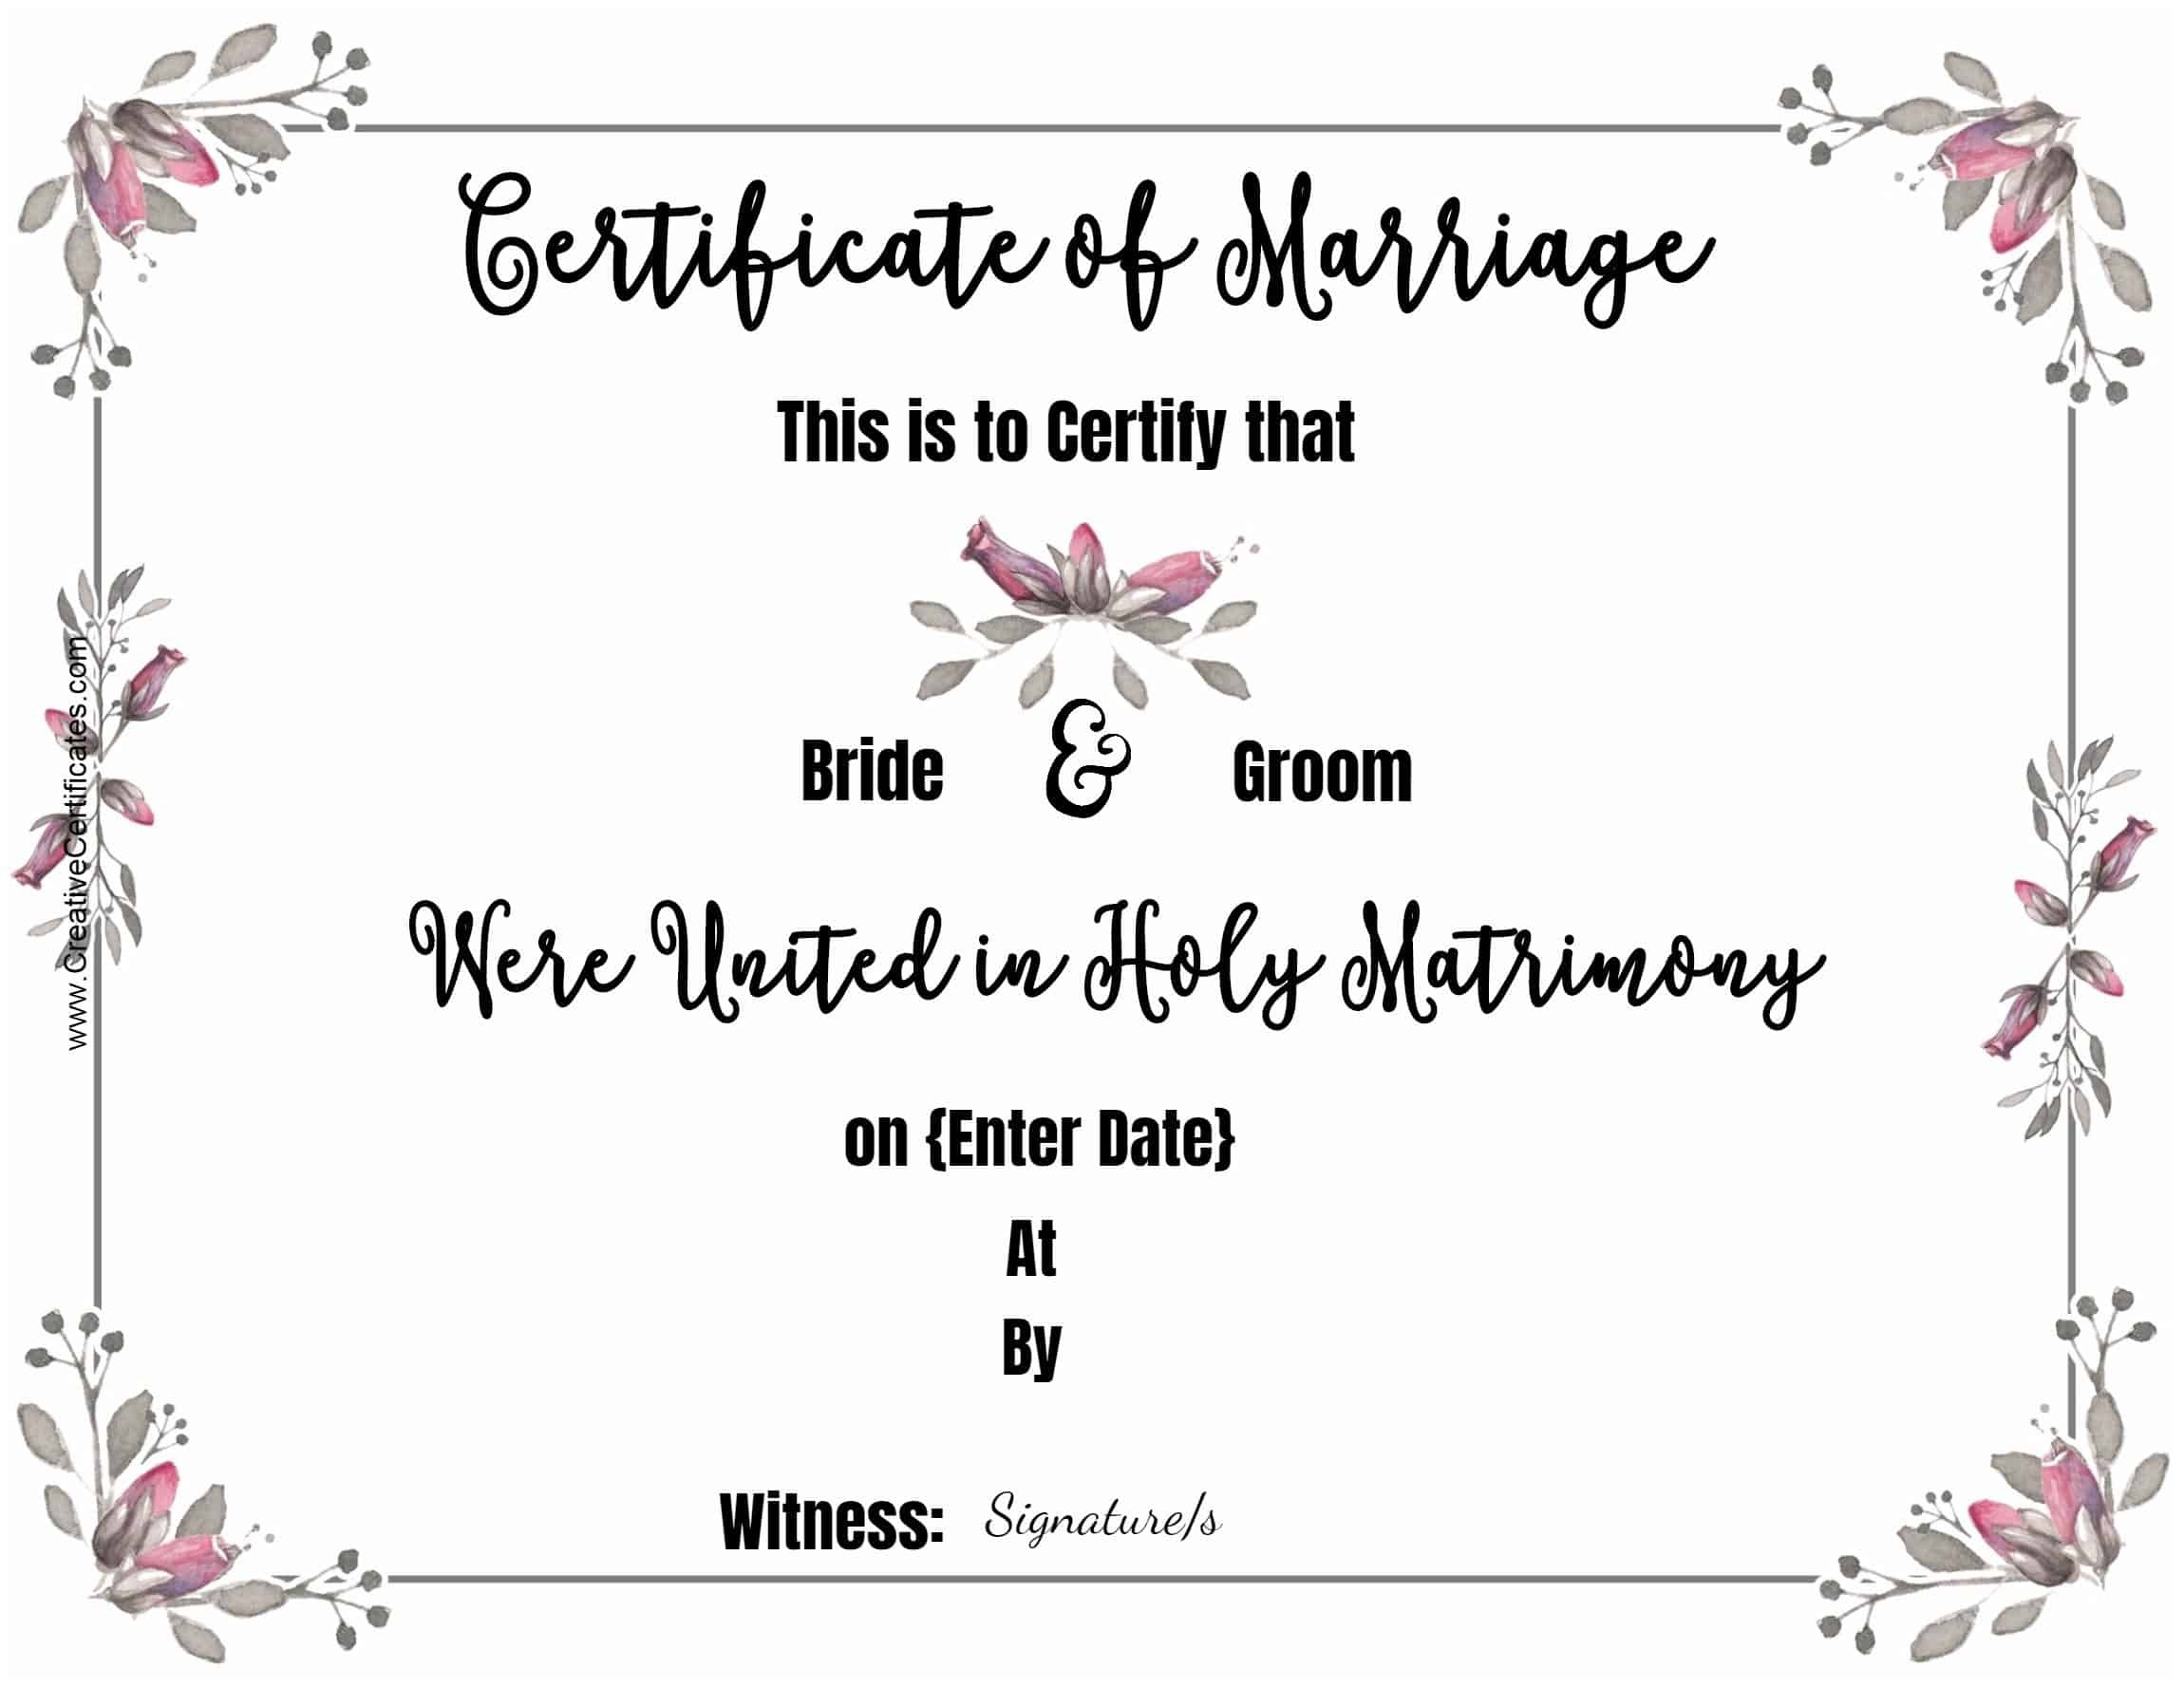 Free Marriage Certificate Template   Customize Online Then Print - Fake Marriage Certificate Printable Free